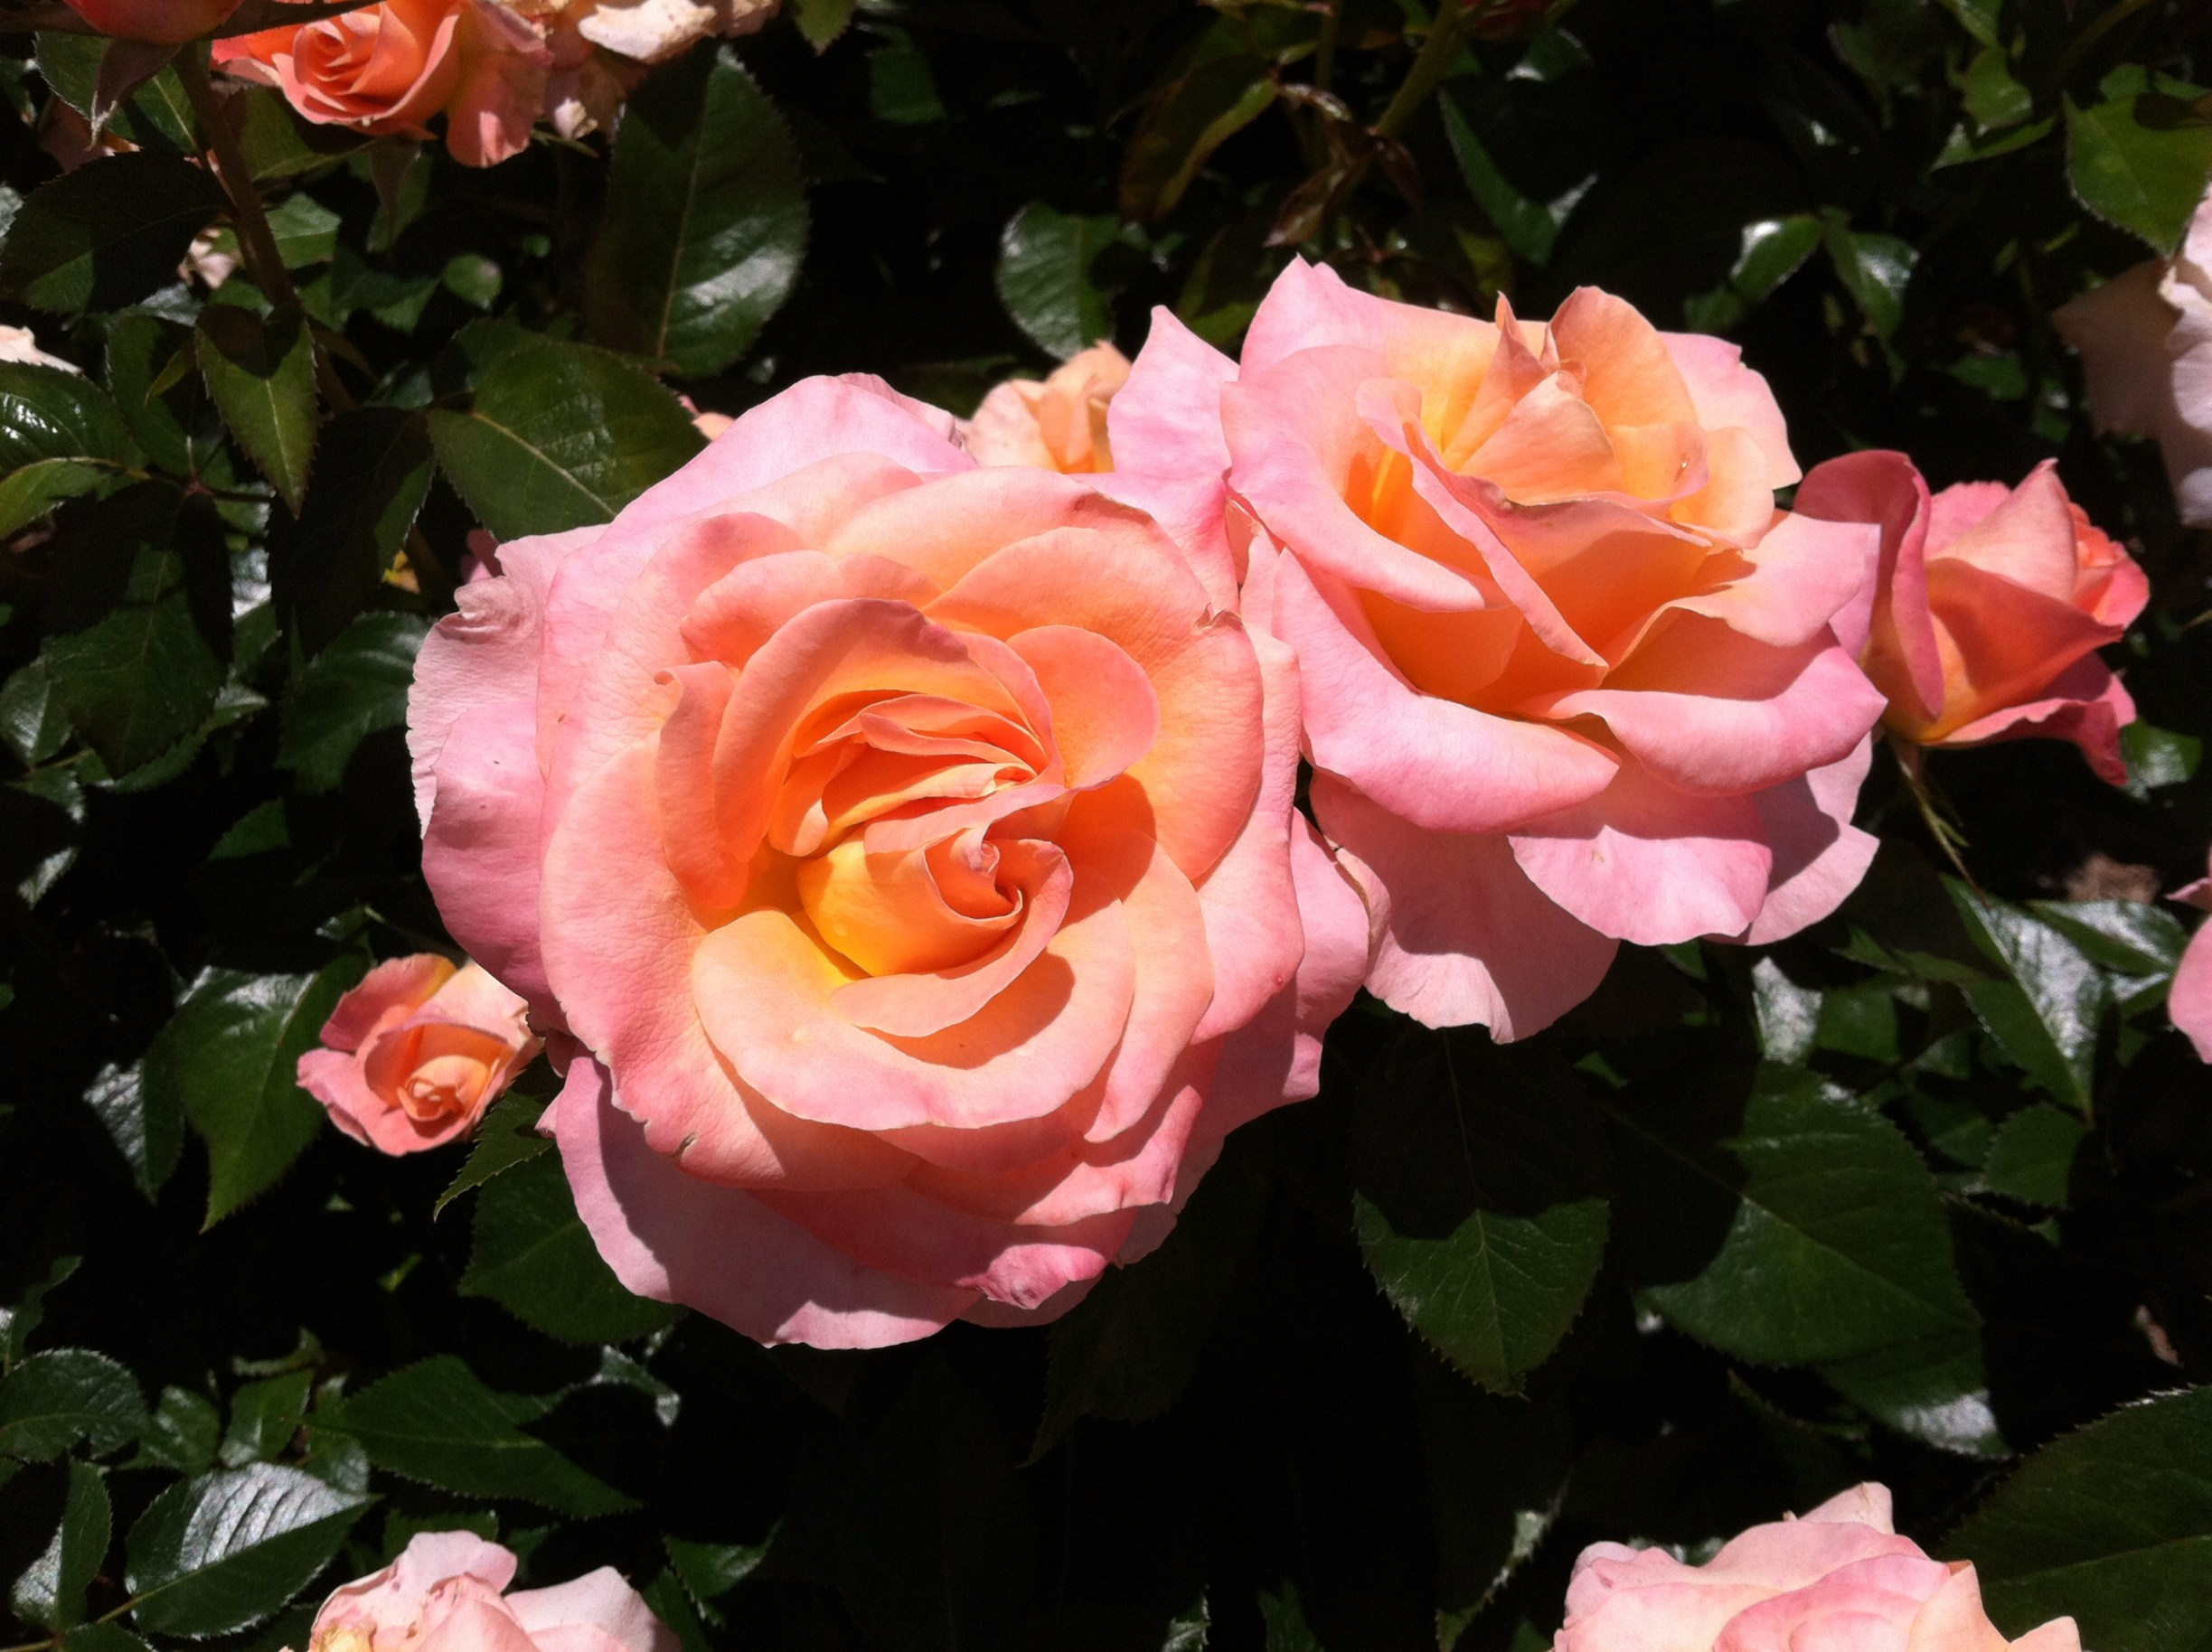 One of the 3,000 rose plants in the garden. Photo © 2013 Alyssa Ford Morel.